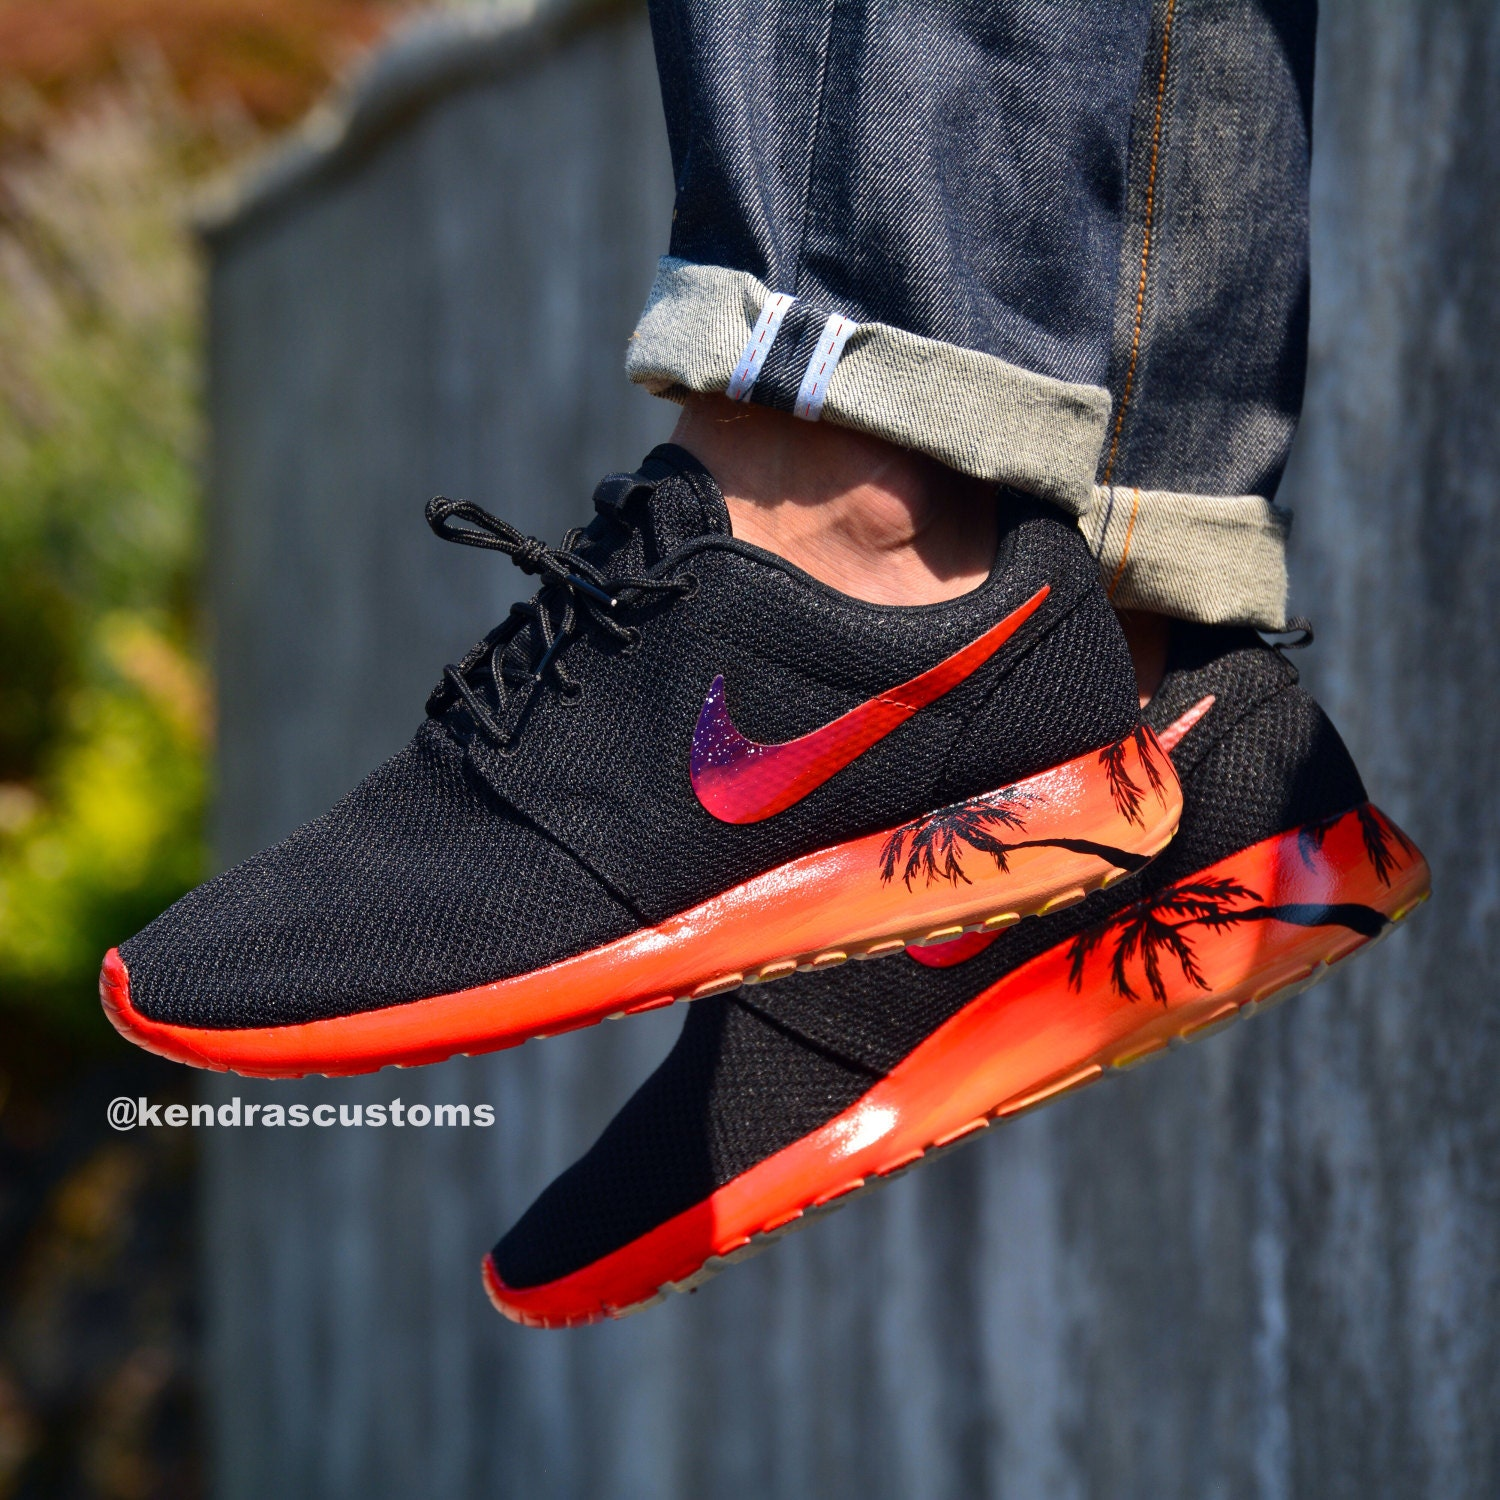 Roshe sunset soles custom mens size 11 roshes hand painted